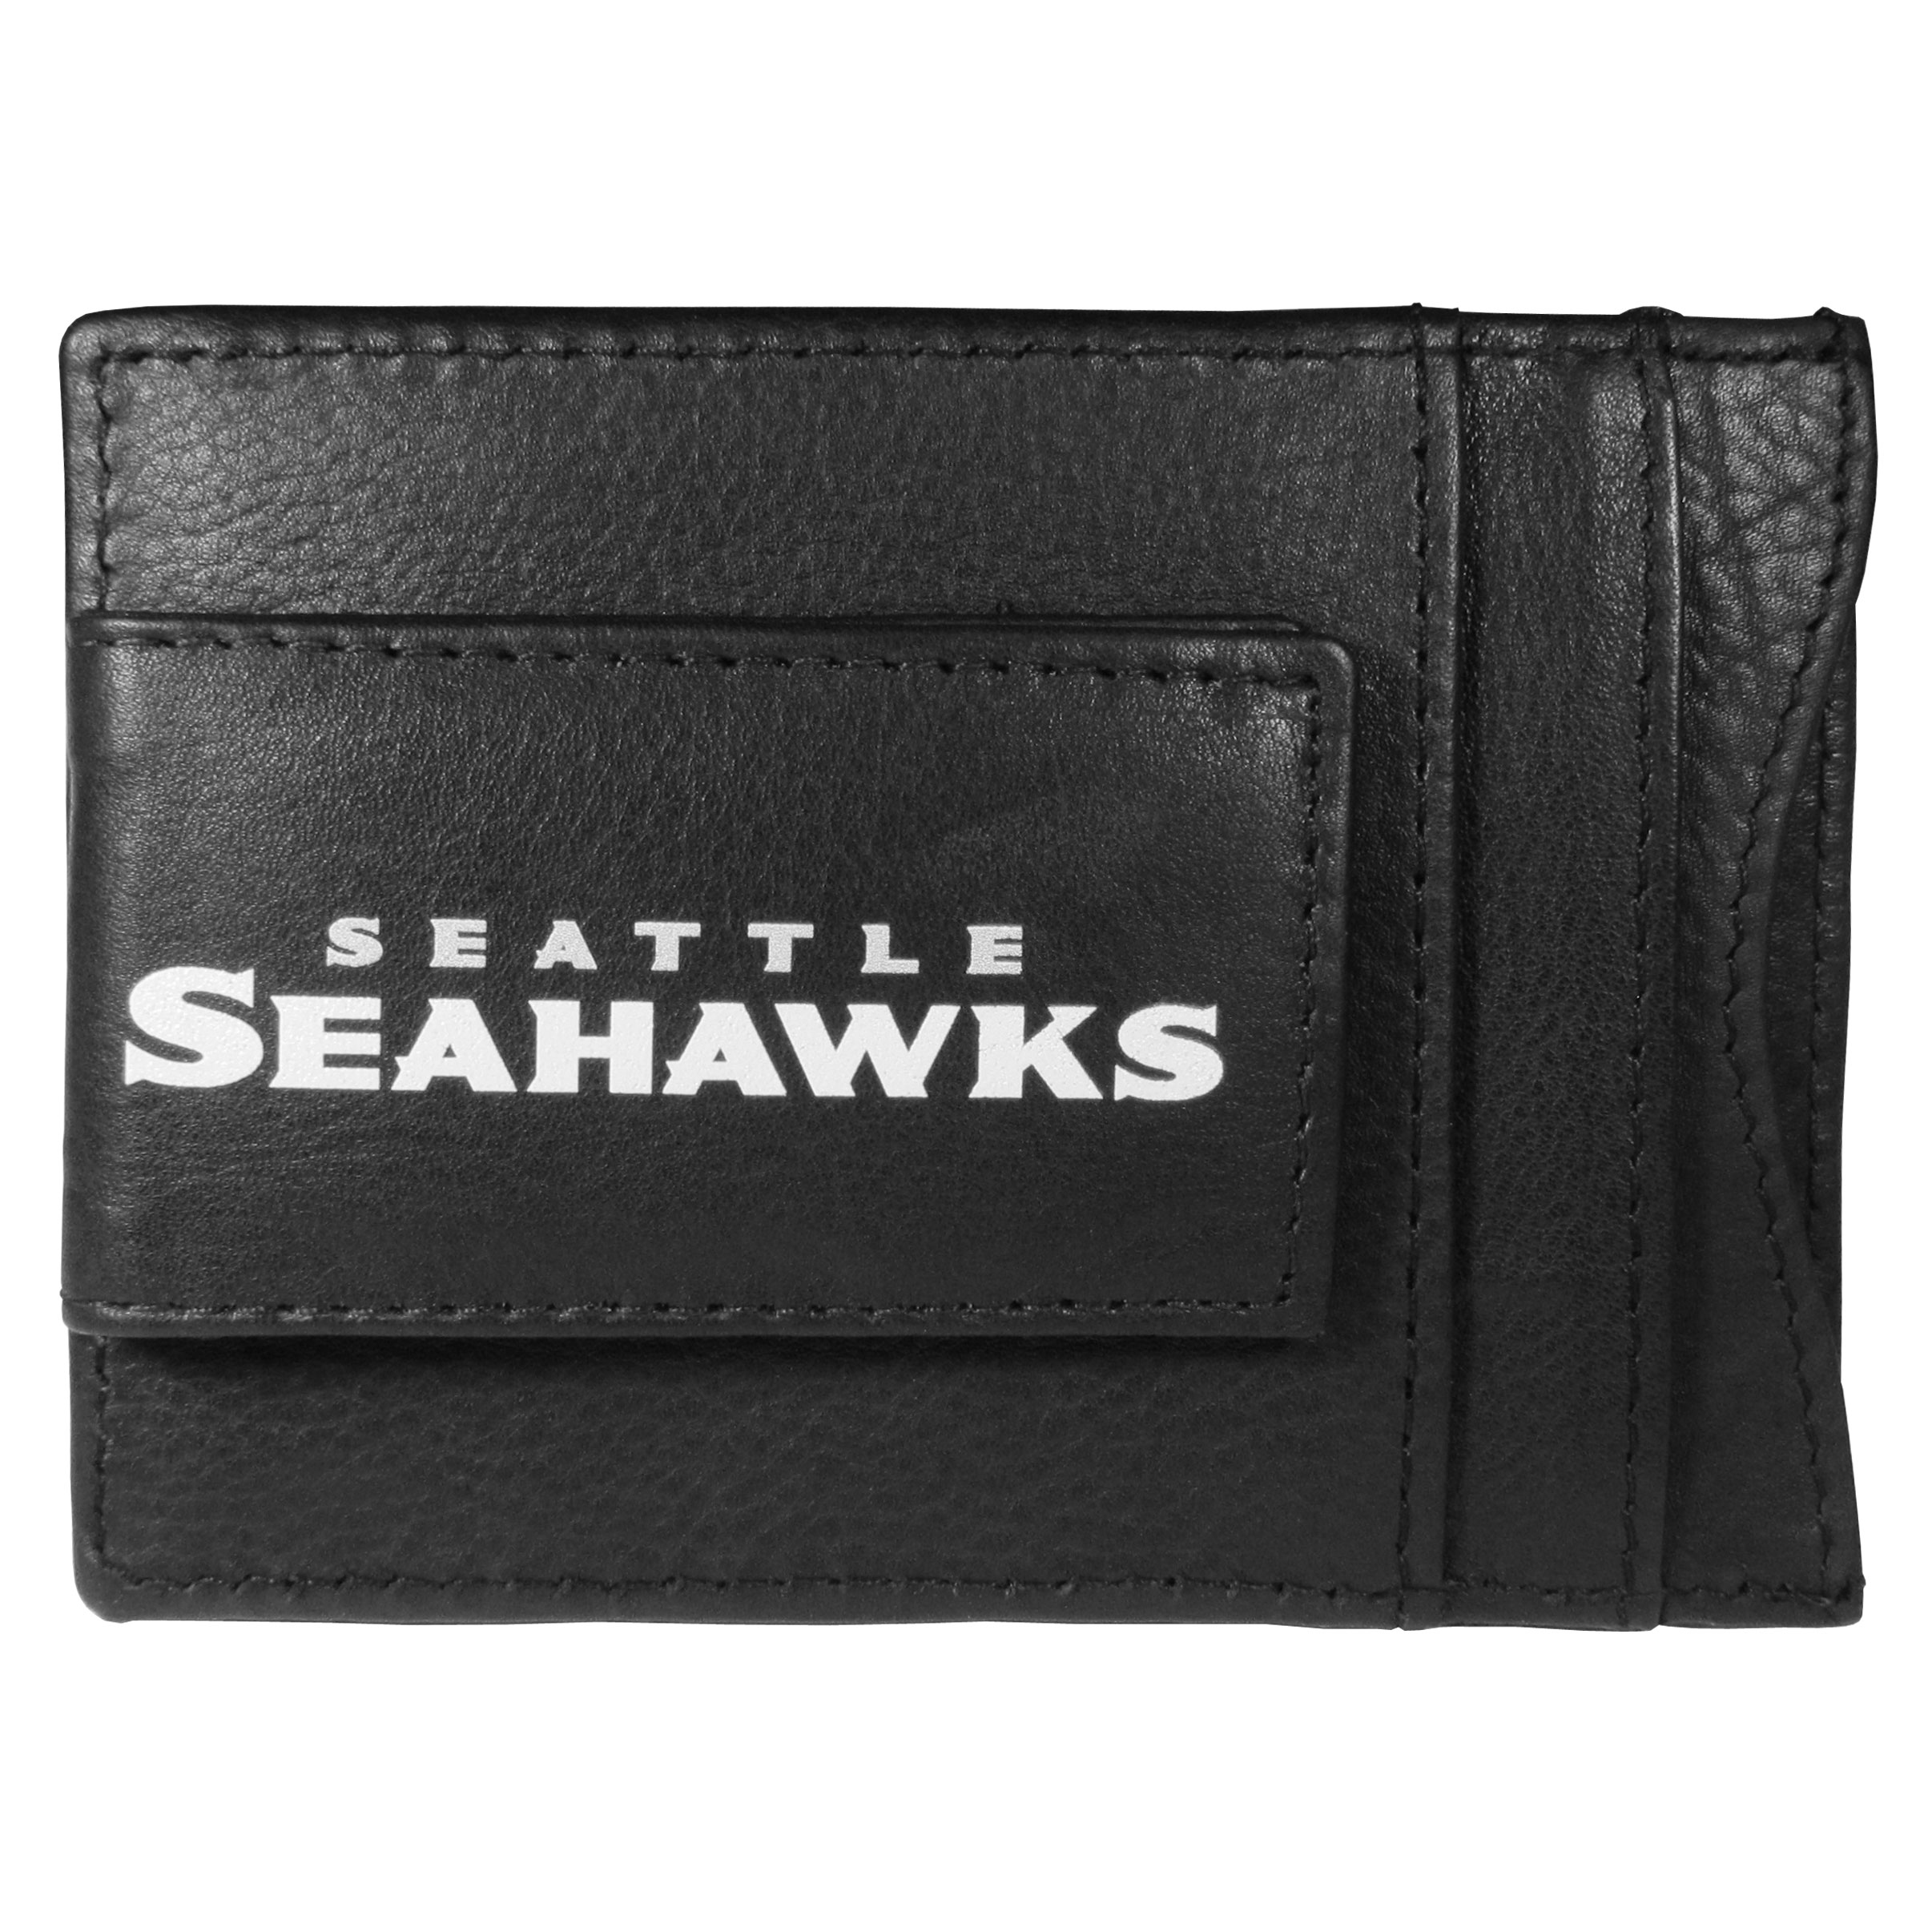 Seattle Seahawks Logo Leather Cash and Cardholder - This super slim leather wallet lets you have all the benefits of a money clip while keeping the organization of a wallet. On one side of this front pocket wallet there is a strong, magnetic money clip to keep your cash easily accessible and the?Seattle Seahawks team logo on the front. The versatile men's accessory is a perfect addition to your fan apparel.